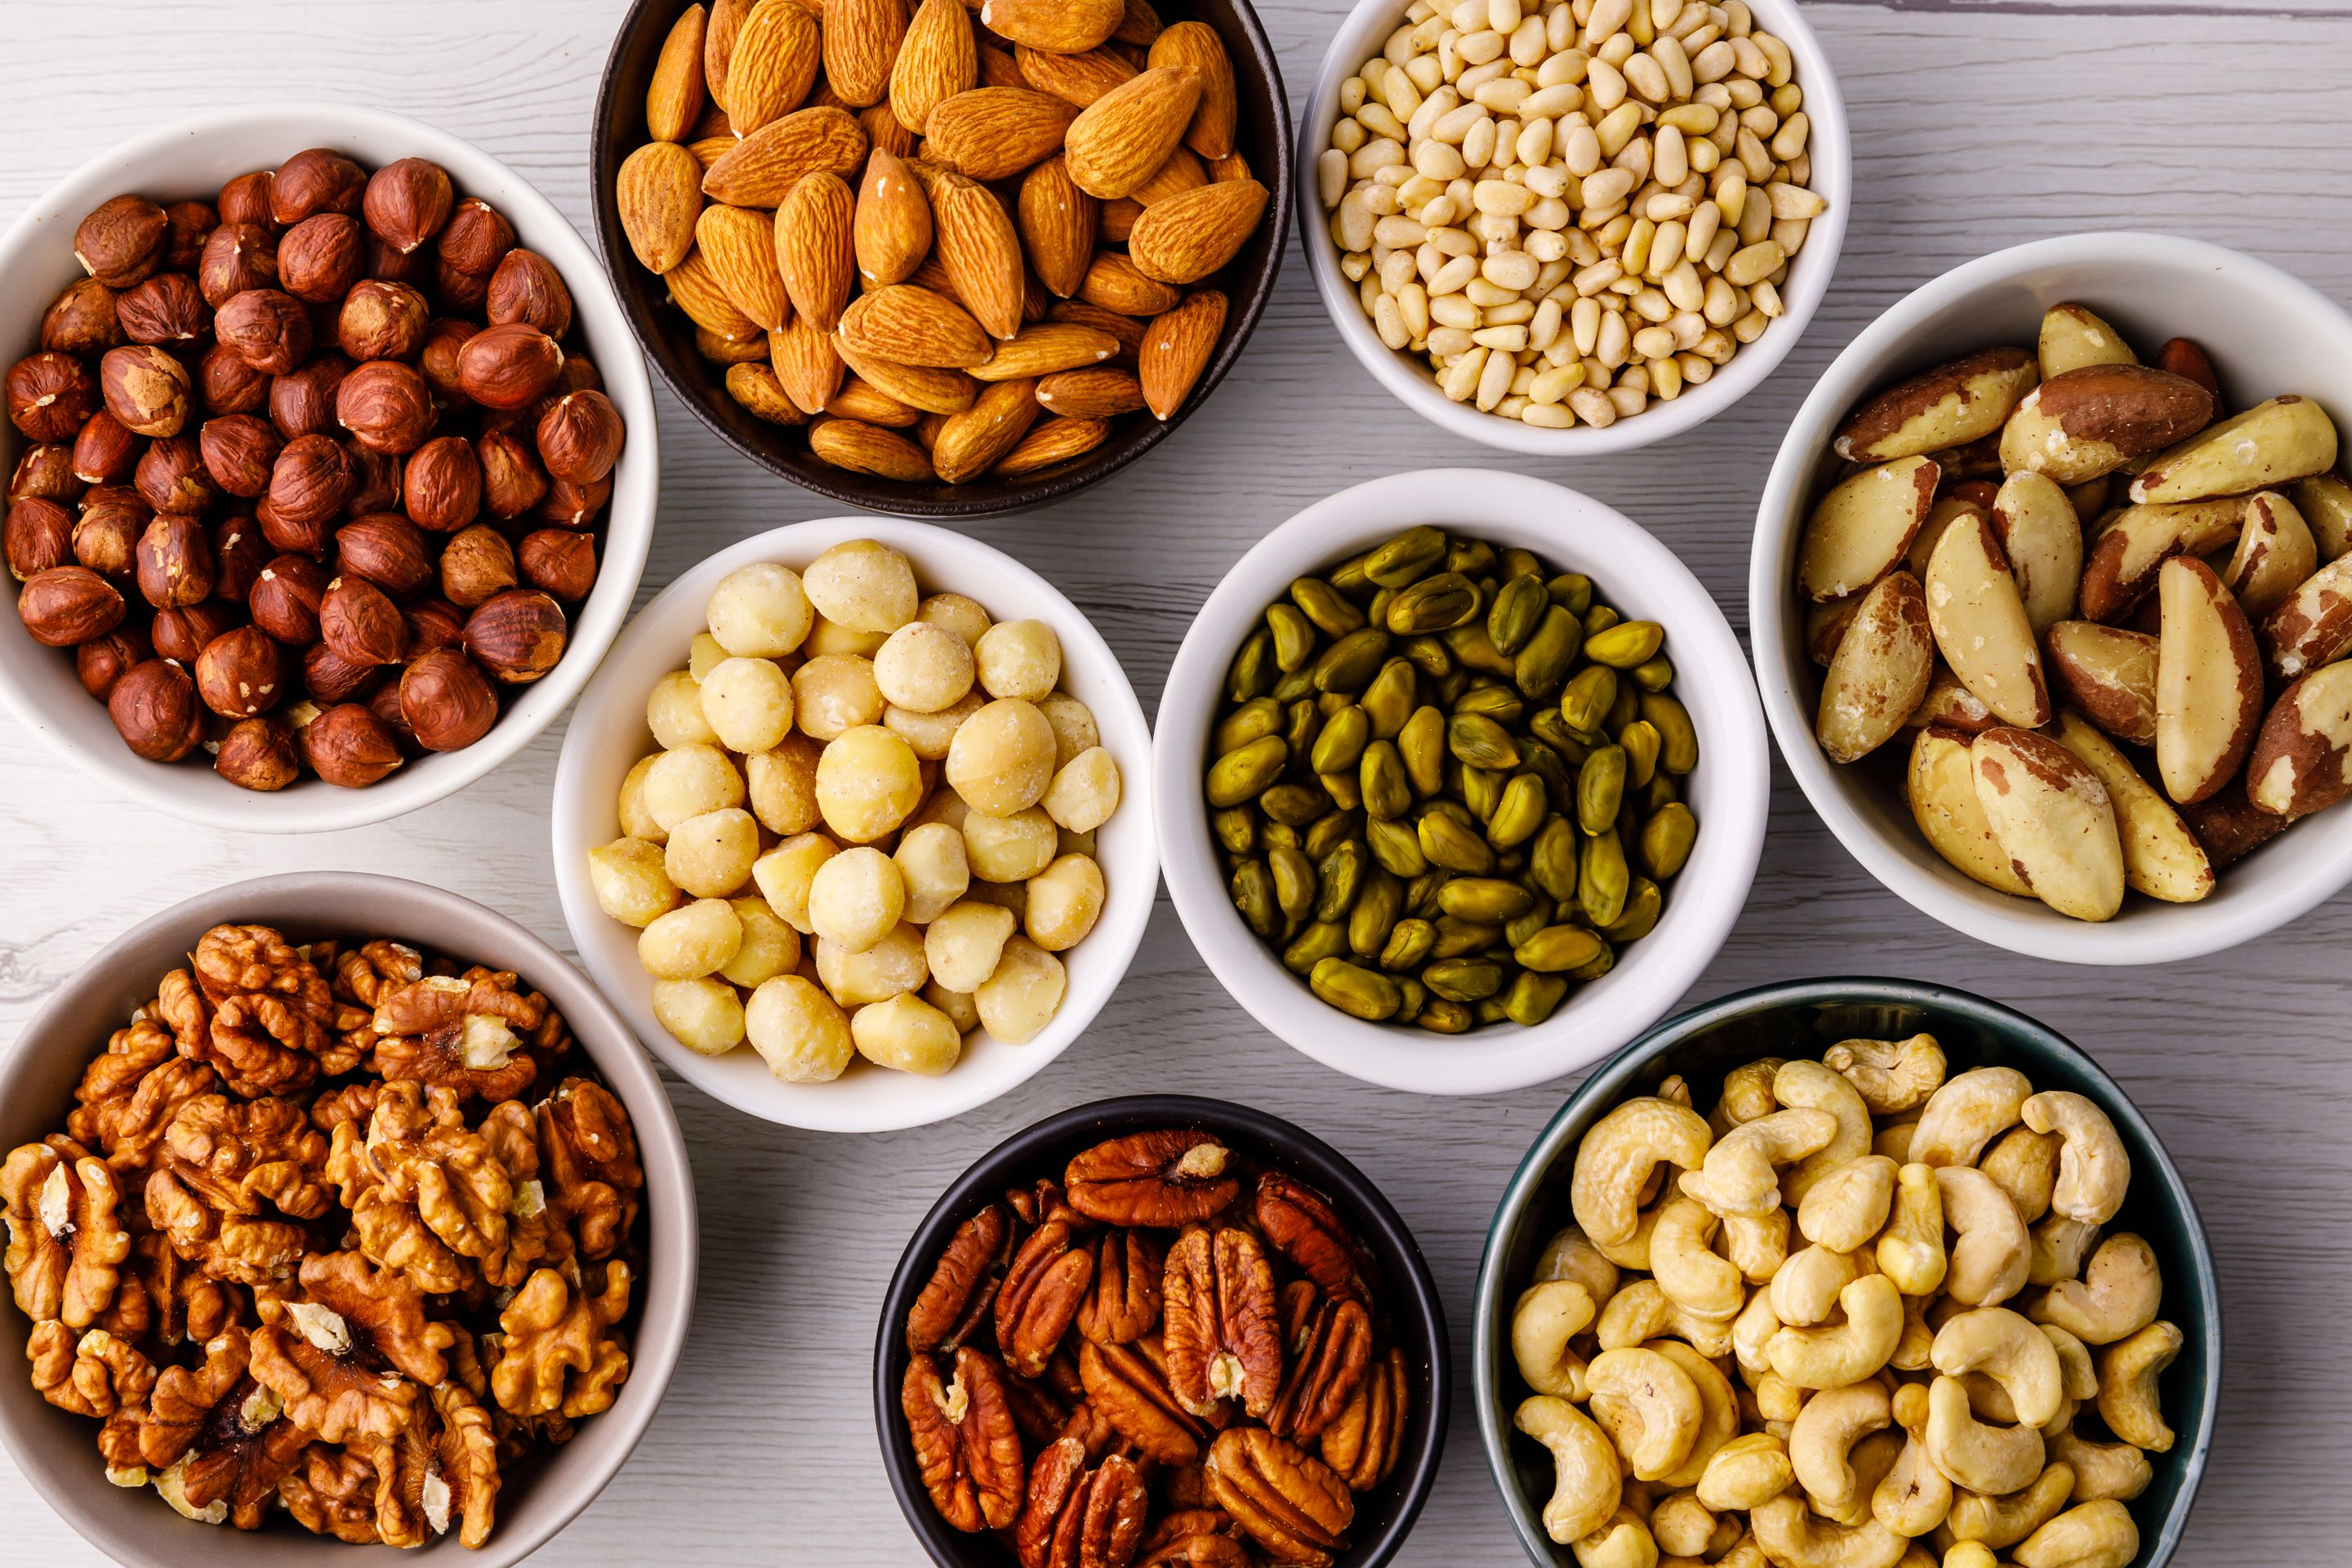 Tree Nut Allergy Diet Guide: What You Need to Know